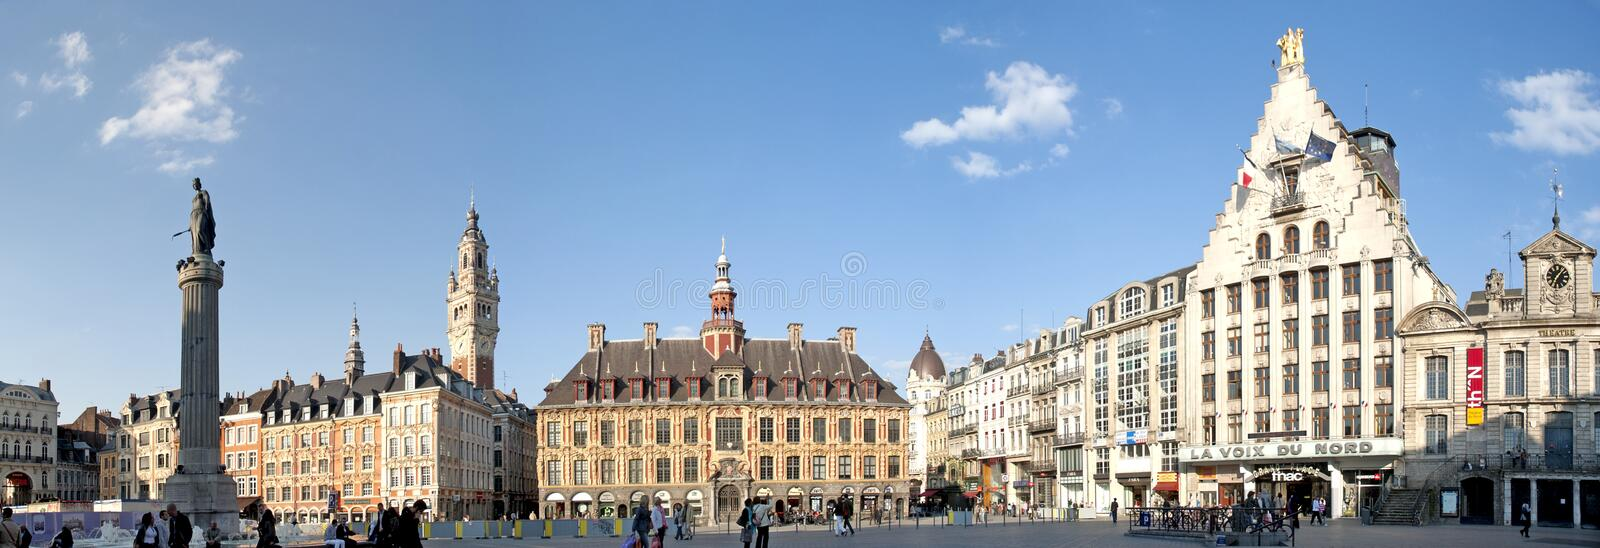 Main square of Lille, France royalty free stock photography